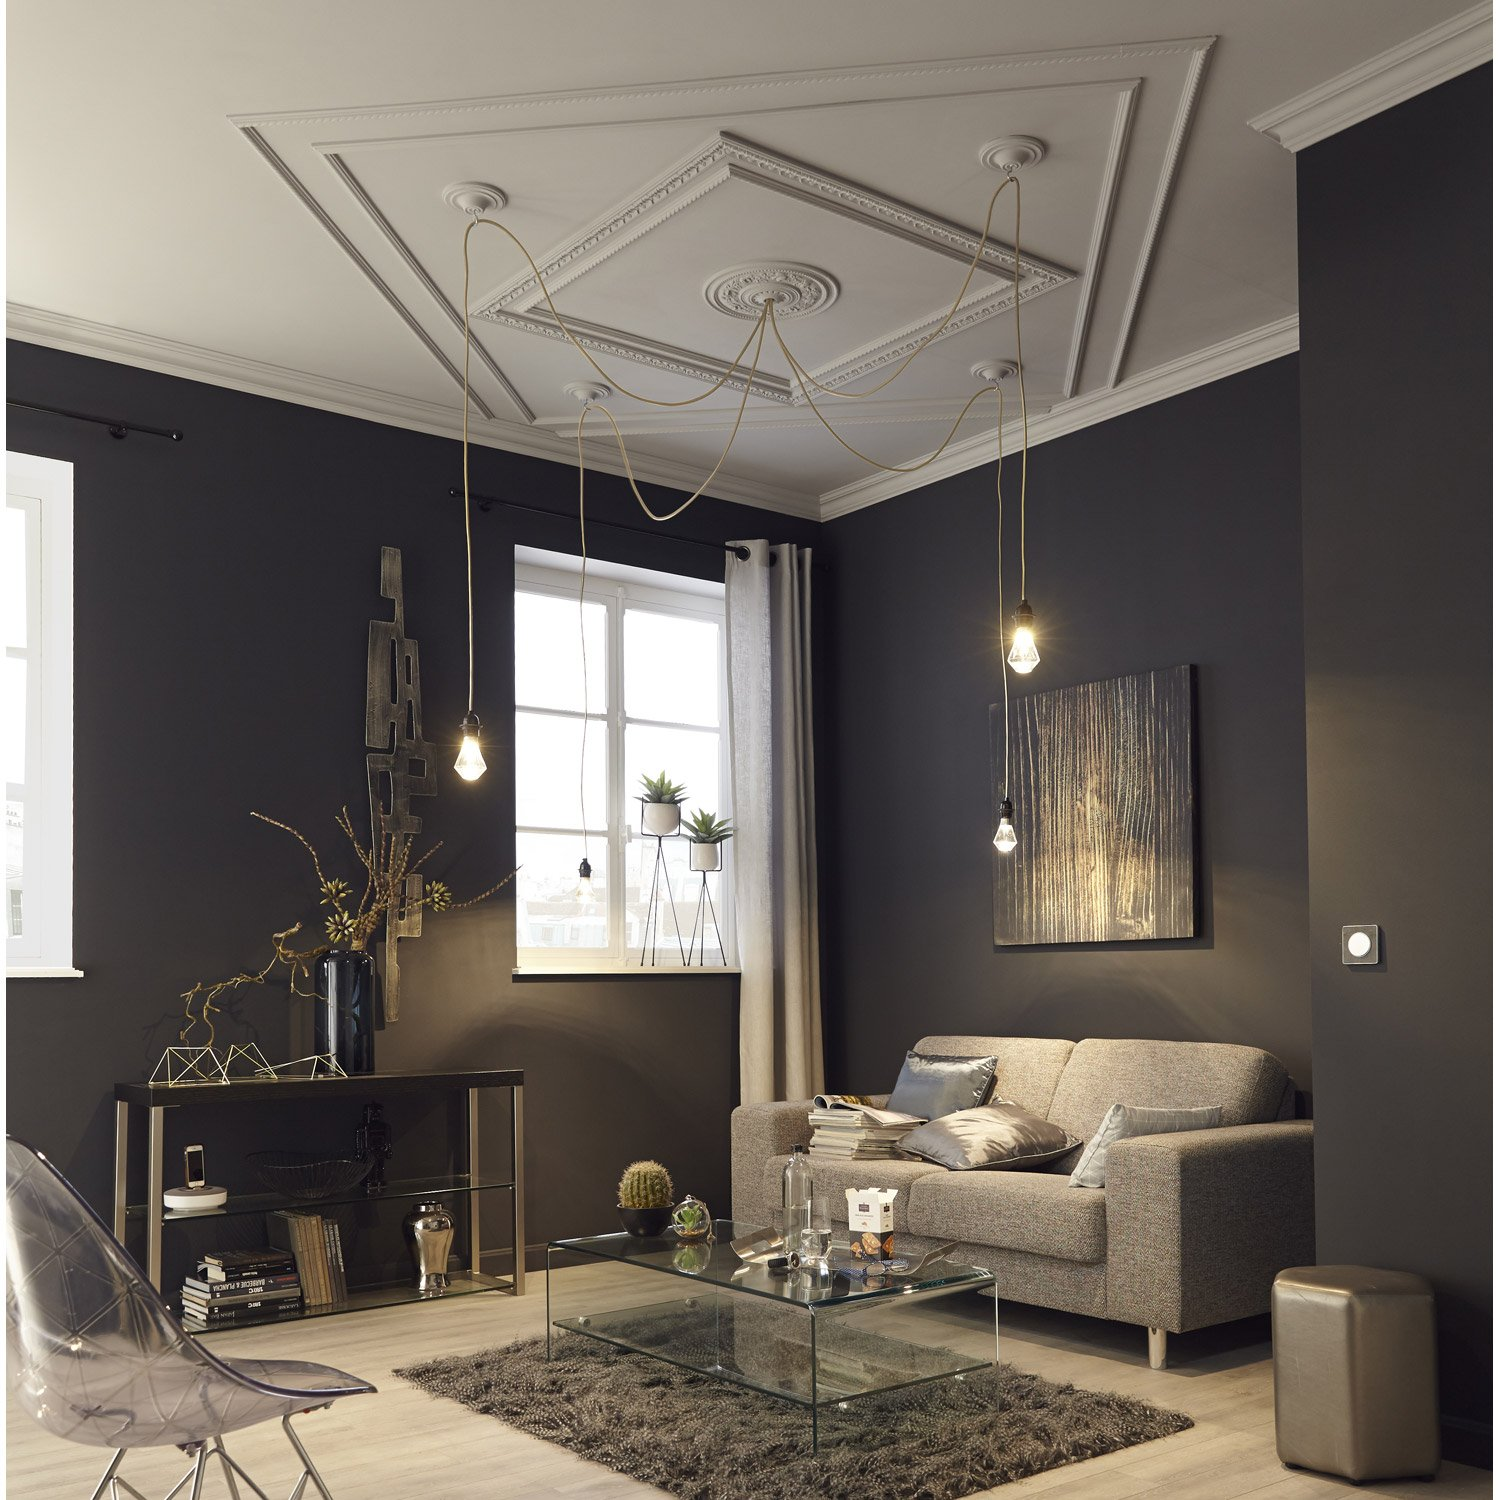 tringle rideau extensible city noir brillant de 160 300 cm inspire leroy merlin. Black Bedroom Furniture Sets. Home Design Ideas